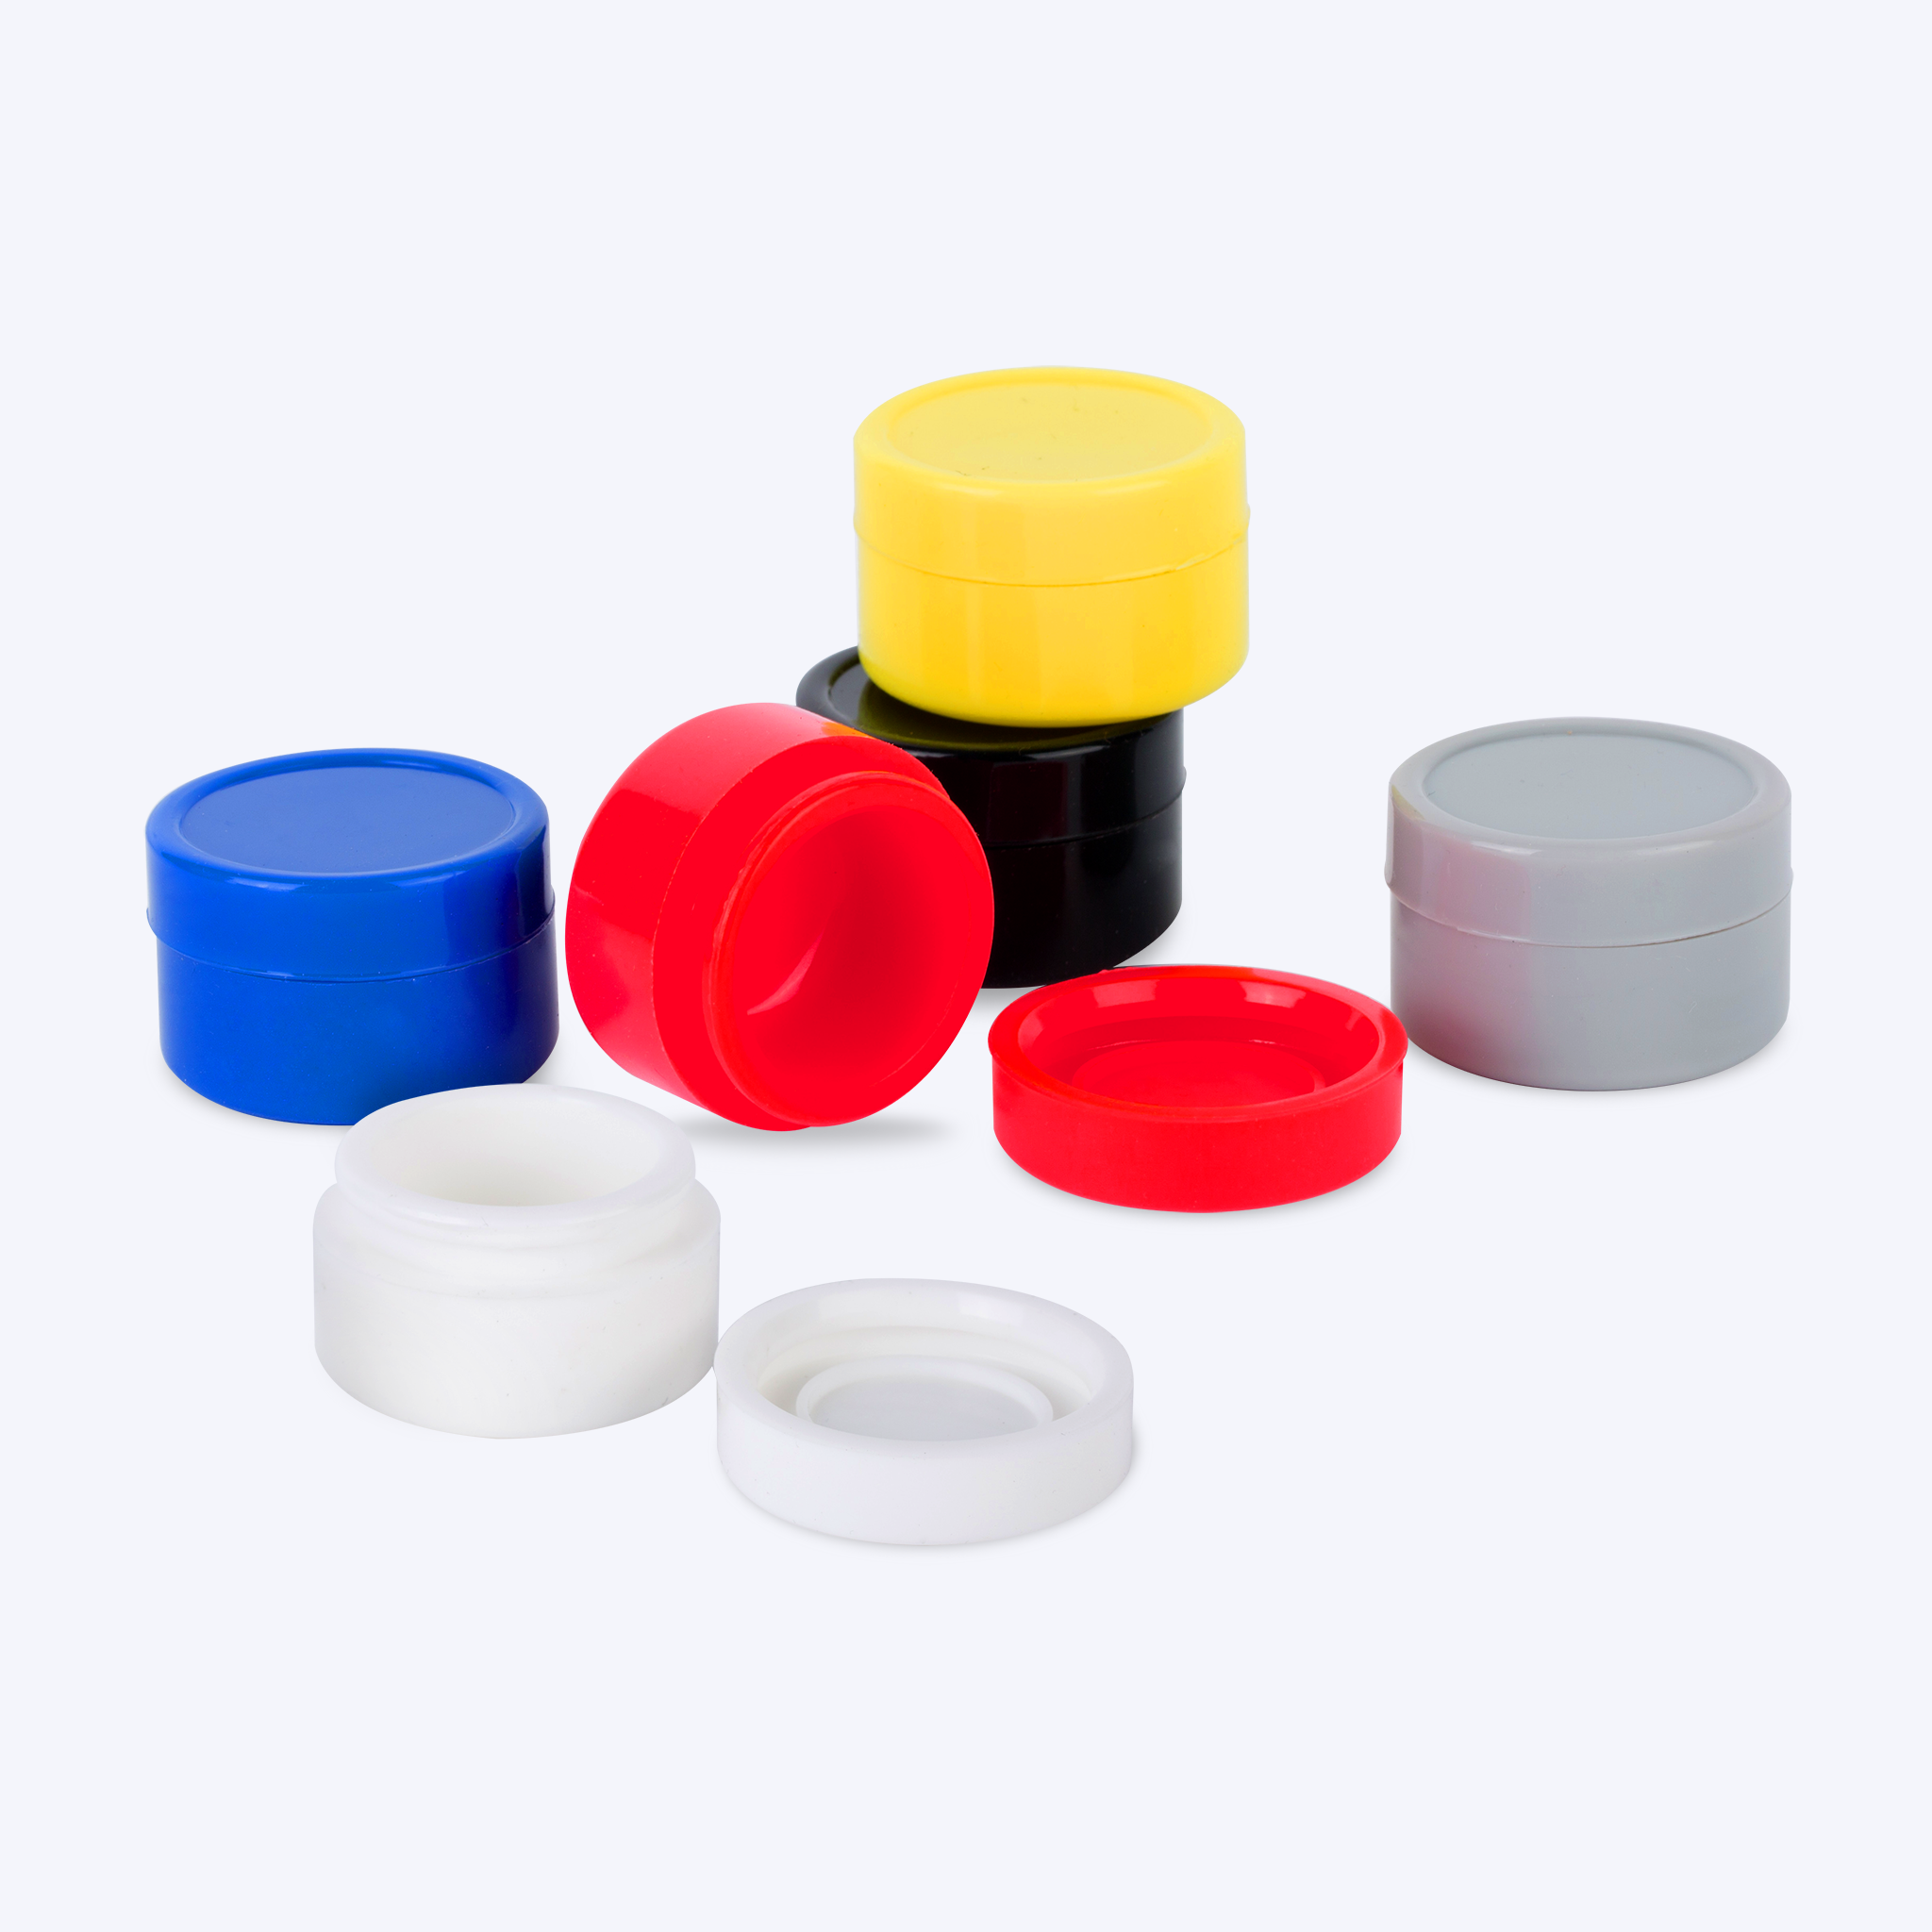 Silicone Concentrate Containers